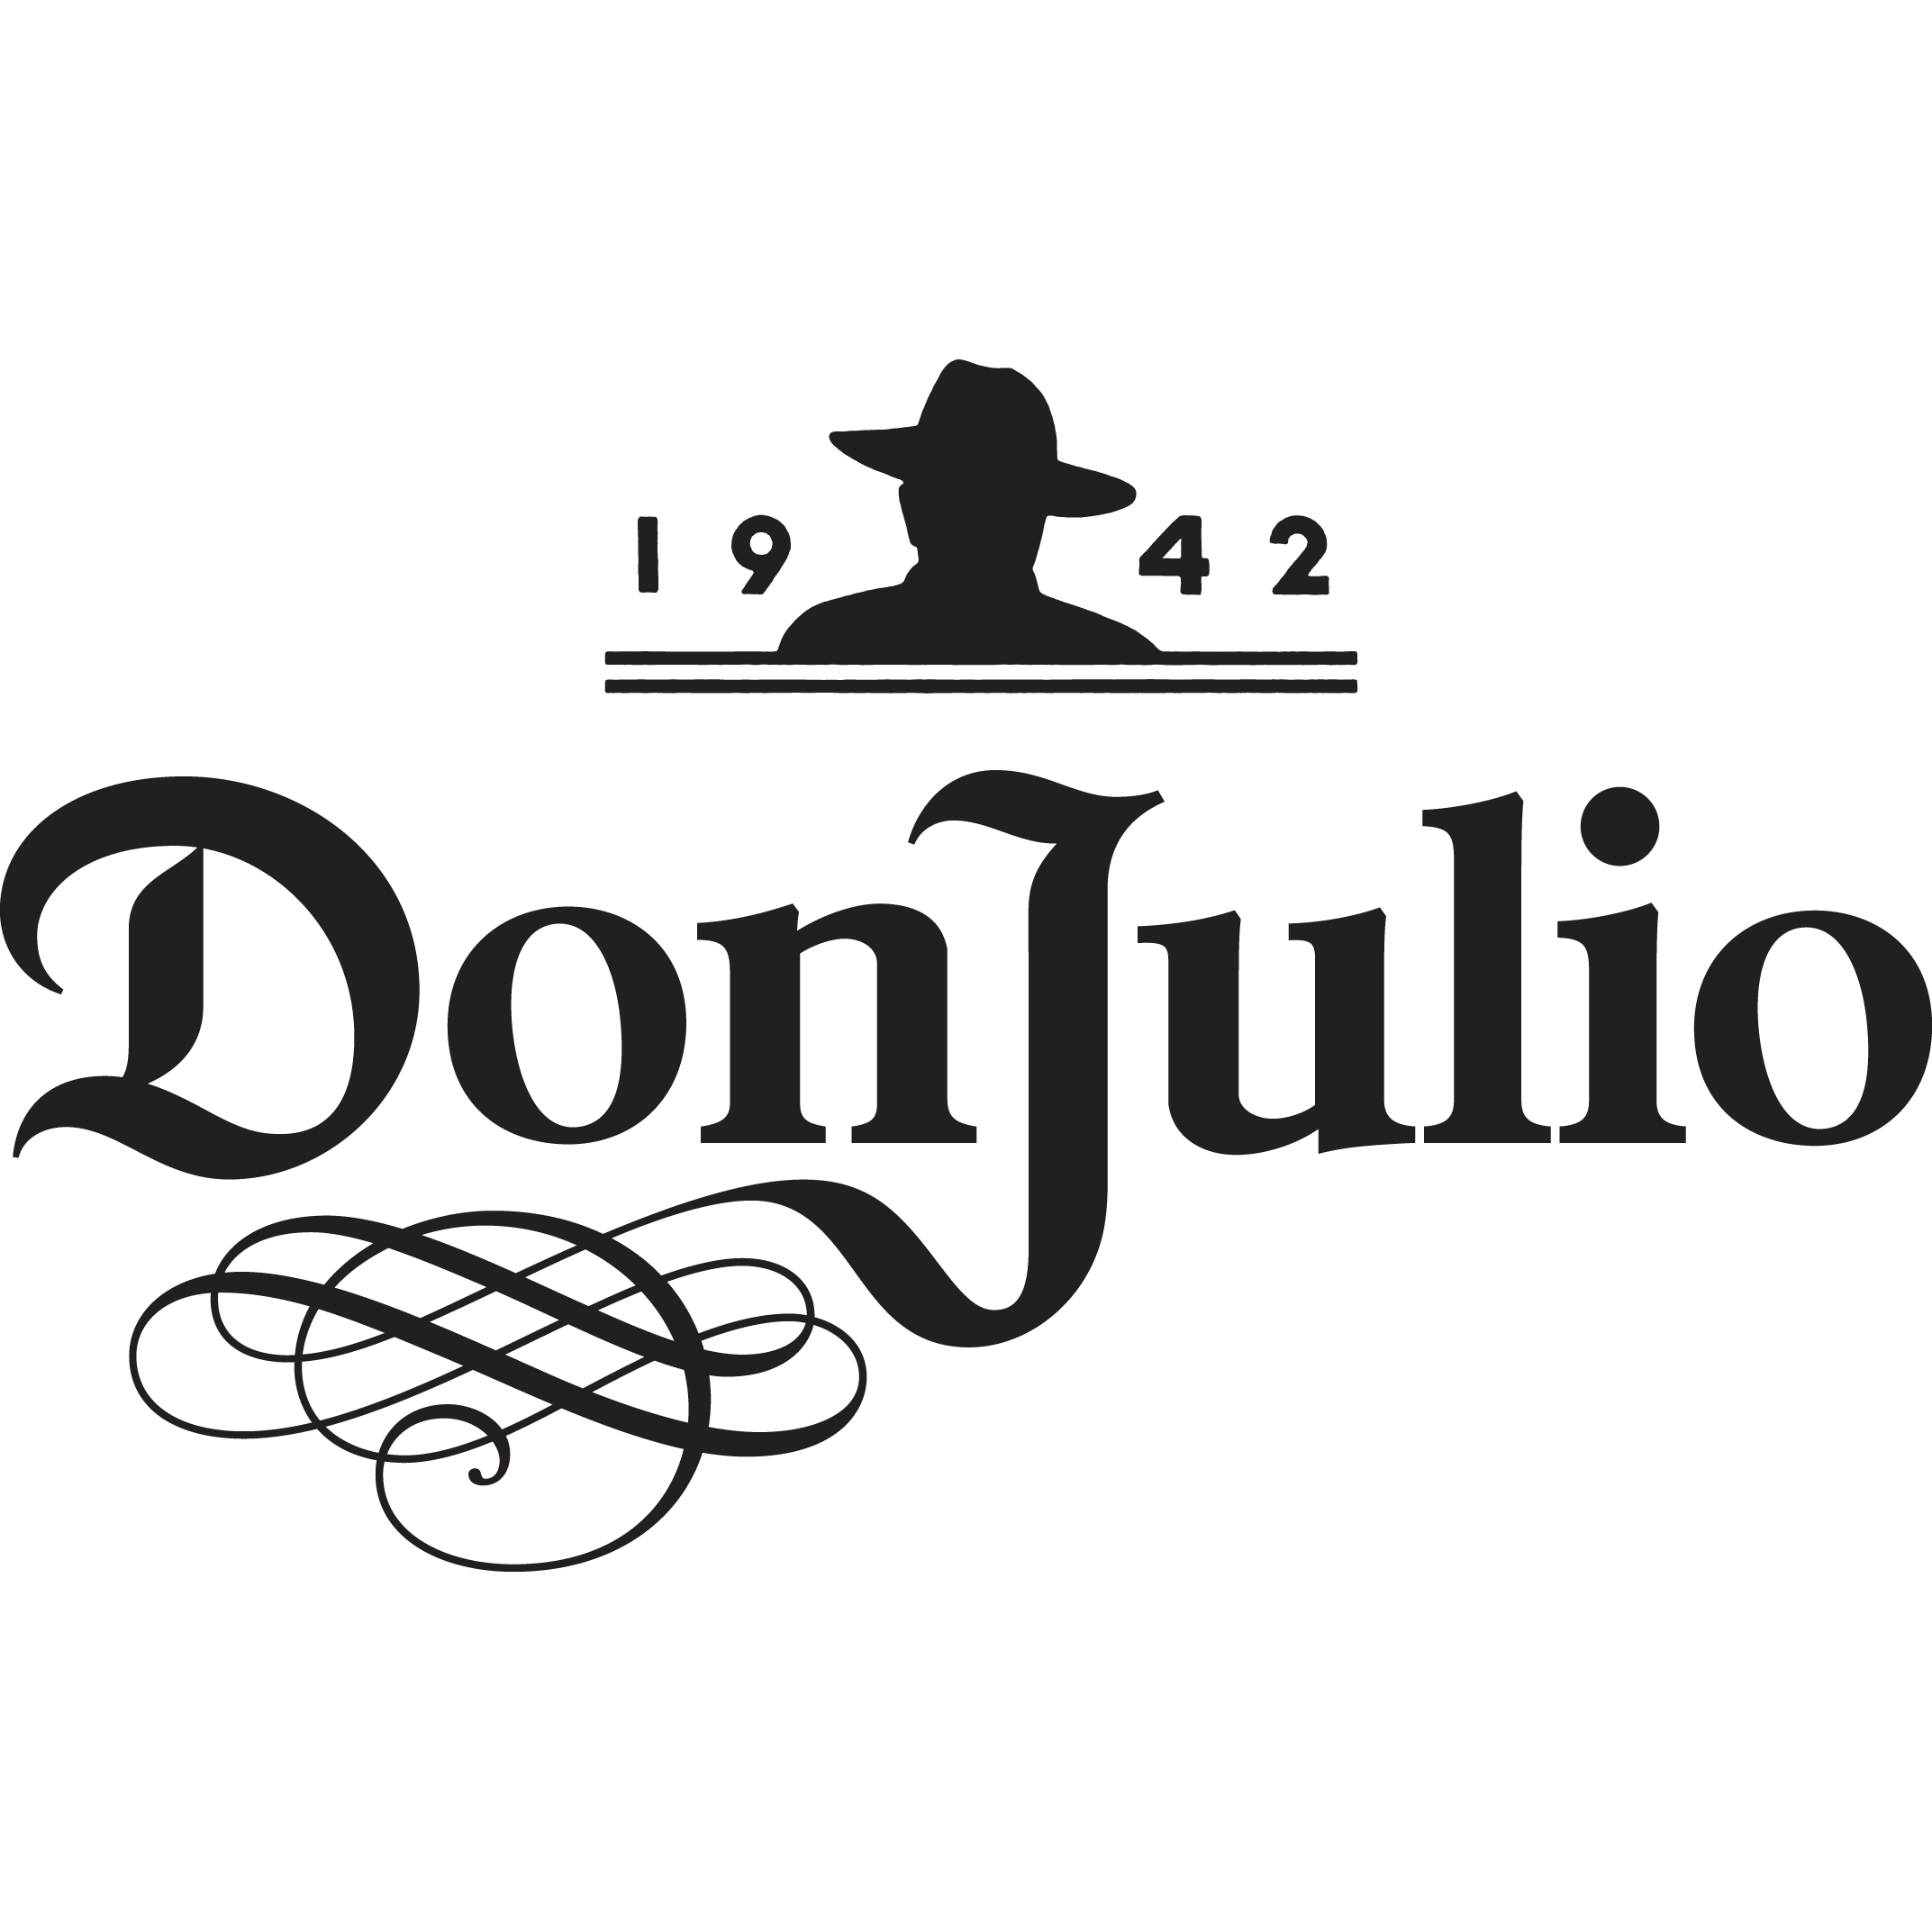 don julio - square.png